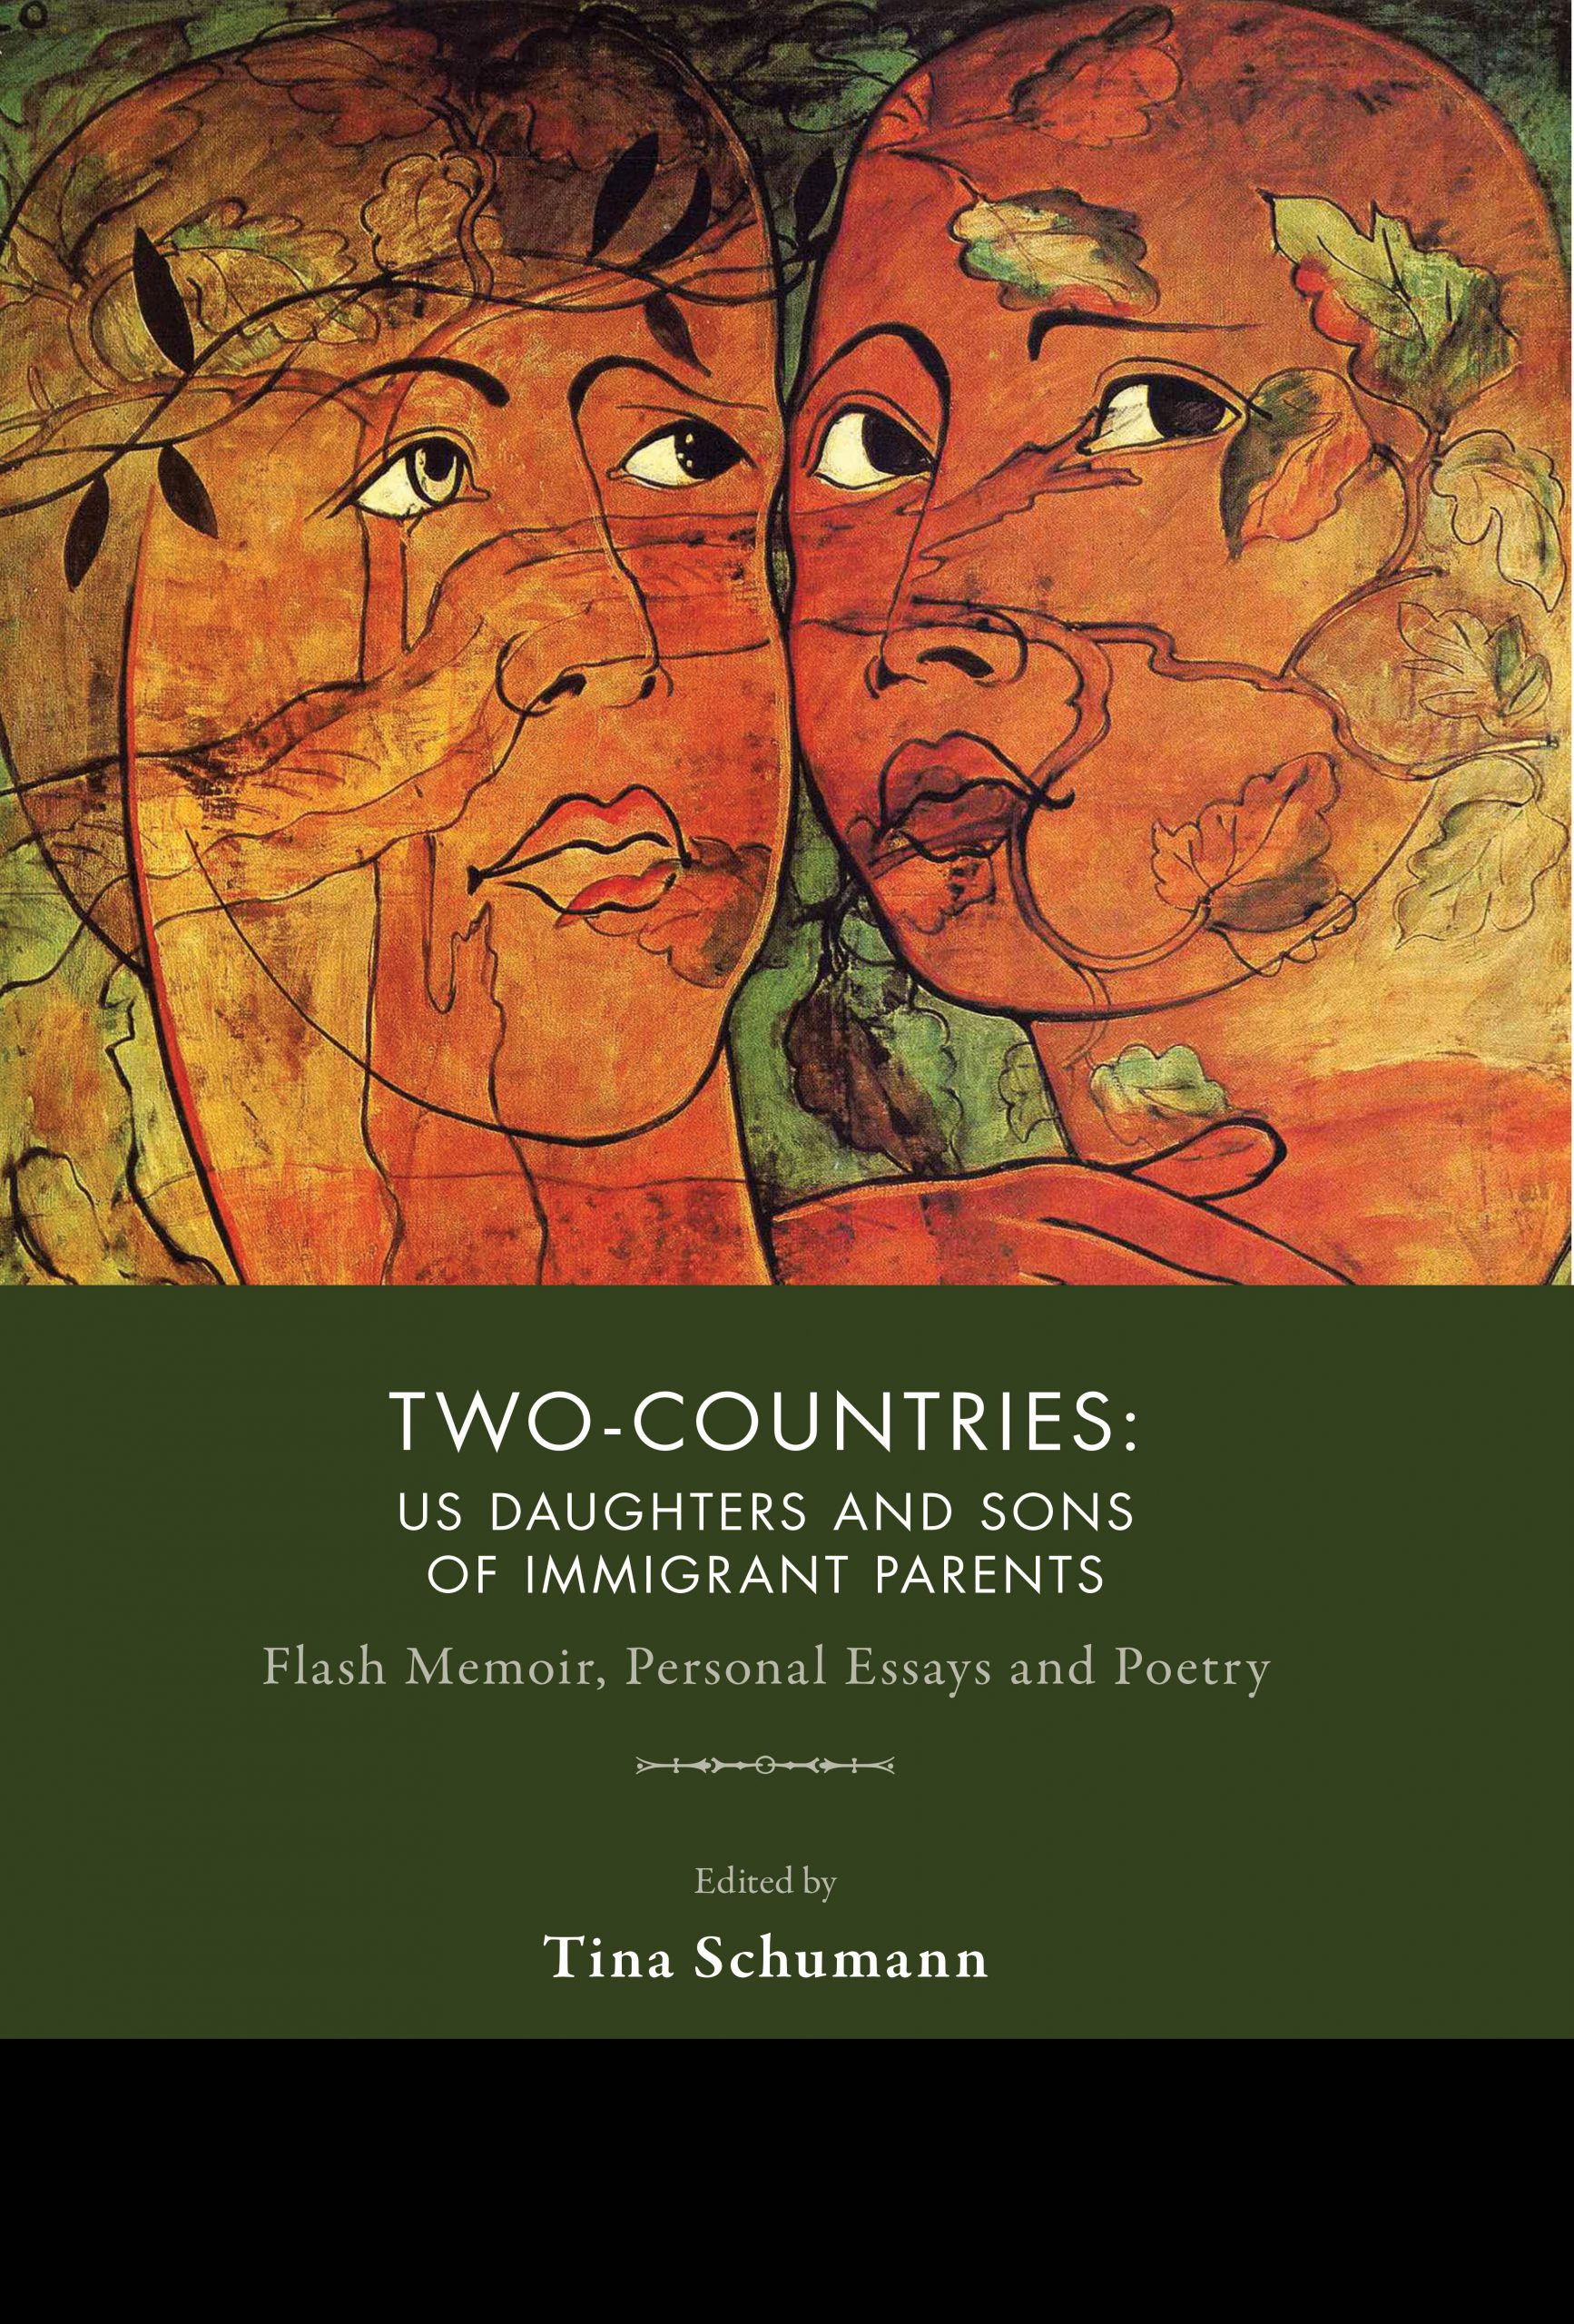 A green background with a painting of two people towards the top with branches and leaves behind their faces, and white script that reads Two Countries: US Daughters and Sons of Immigrant Parents edited by Tina Shuman.